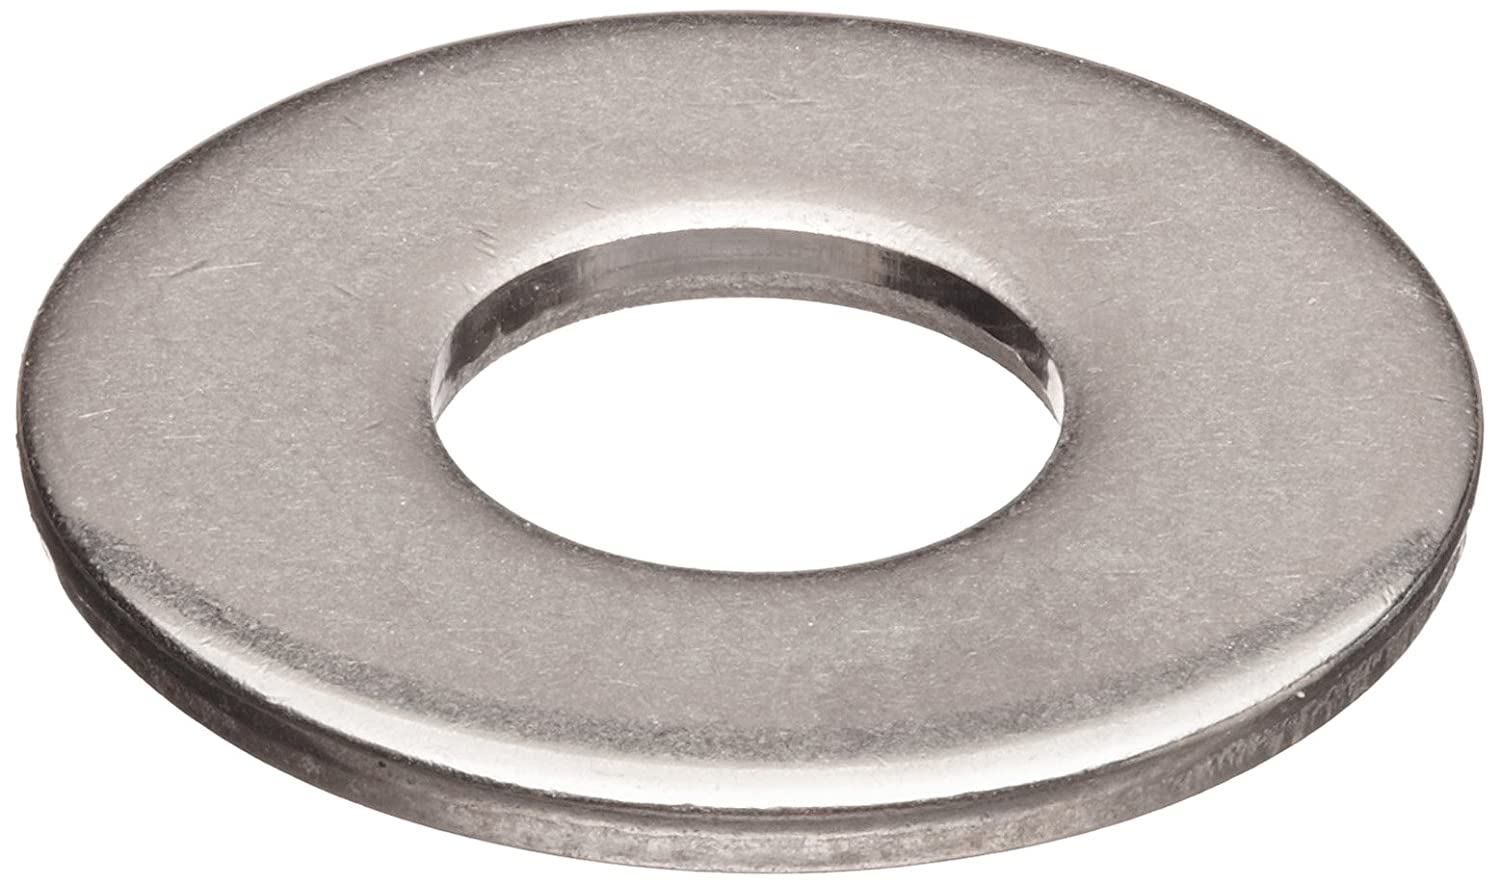 5//8 Hole Size 0.156 ID 0.375 OD 0.0505 Nominal Thickness Accurate Manufacturing MS15795-806BULK Pack of 100 0.156 ID 18-8 Stainless Steel Flat Washer 0.375 OD Made in US 0.0505 Nominal Thickness 5//8 Hole Size